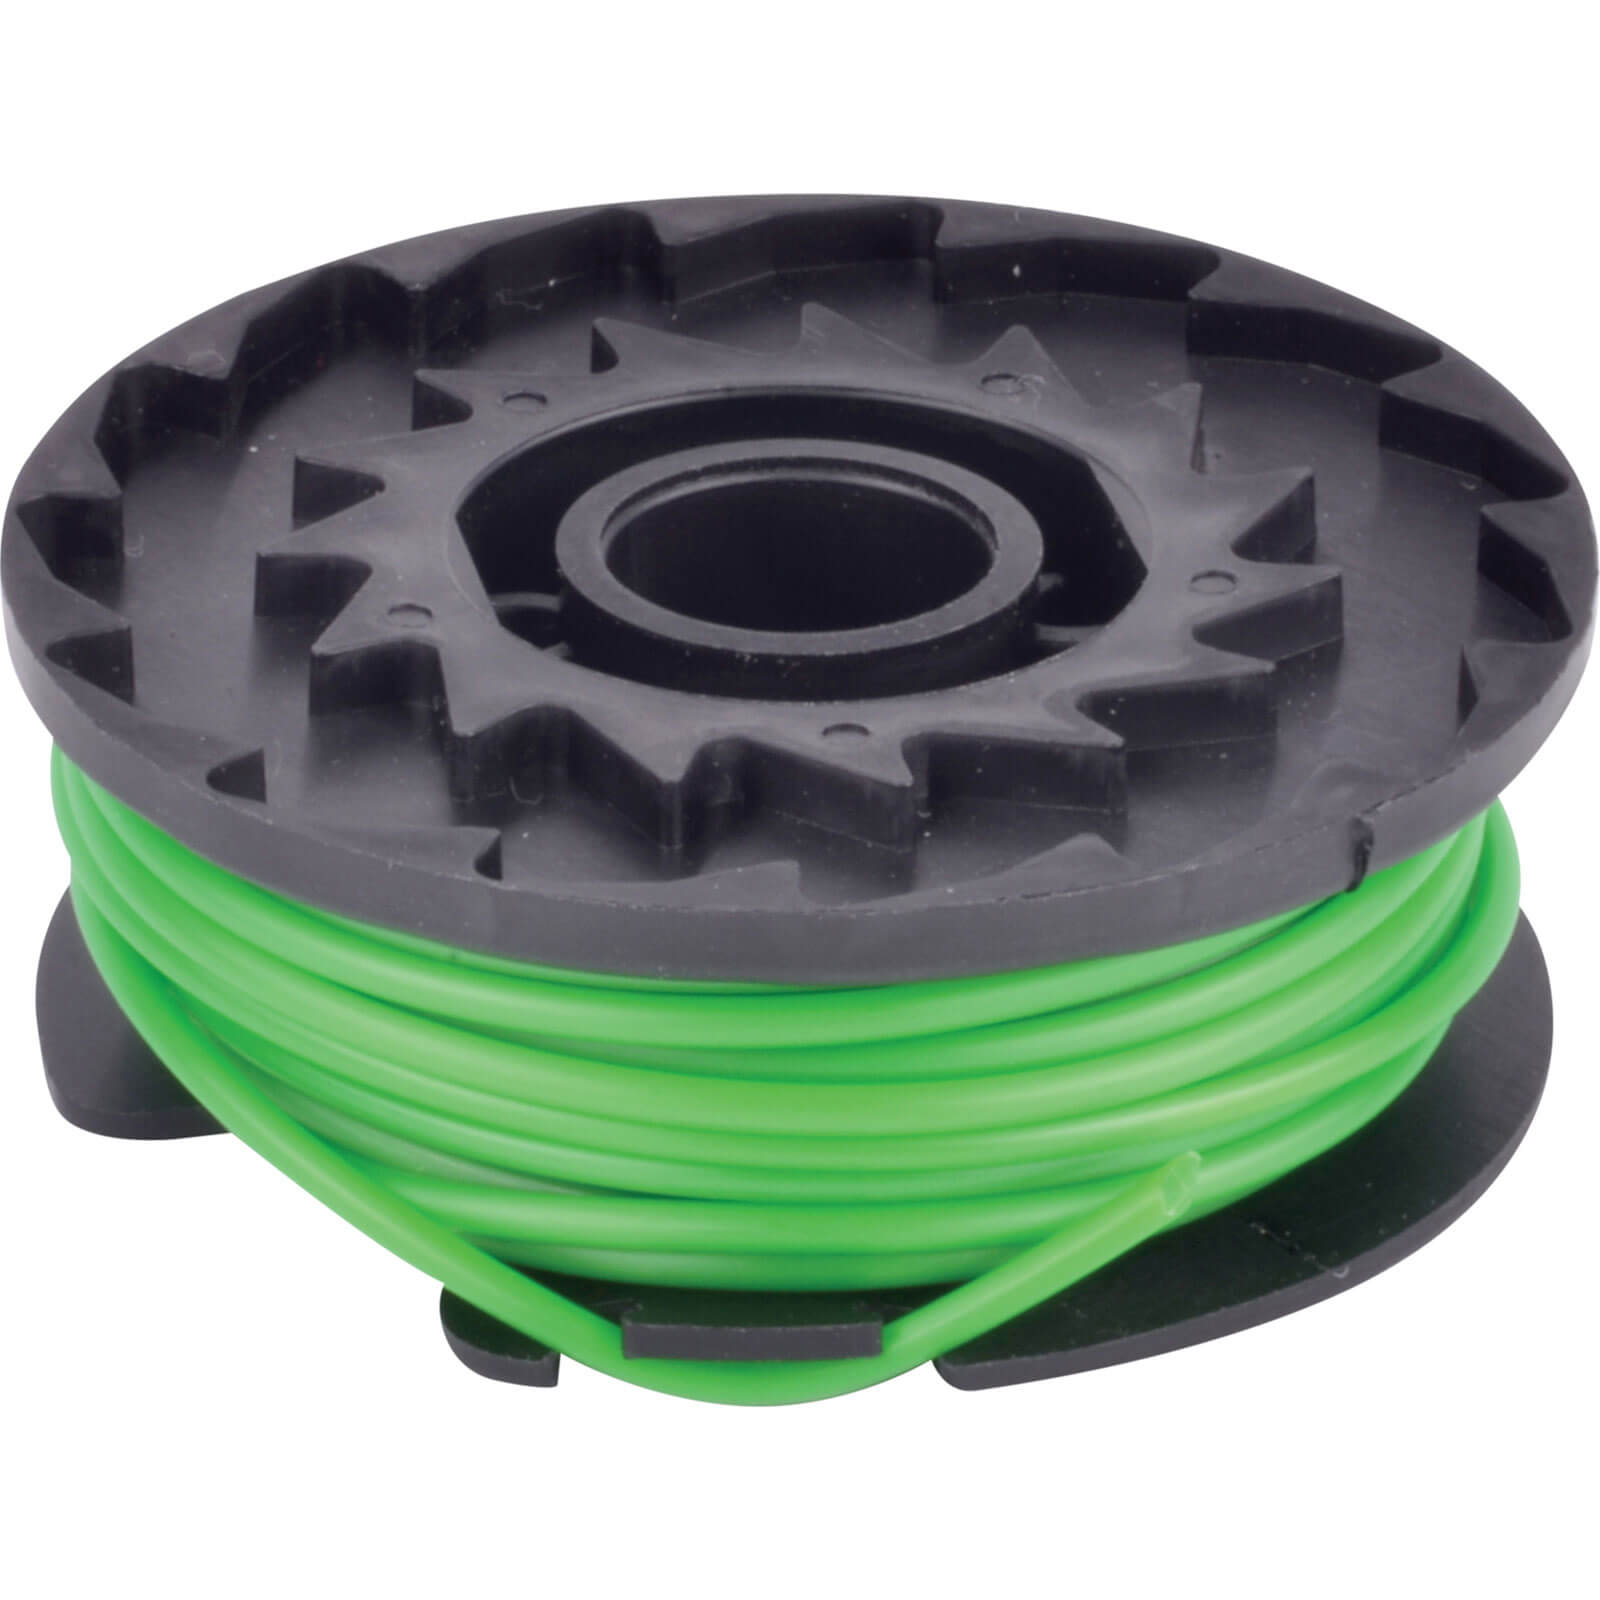 Image of ALM 2mm x 6m Spool & Line for Worx WG168 Grass Trimmer Pack of 1